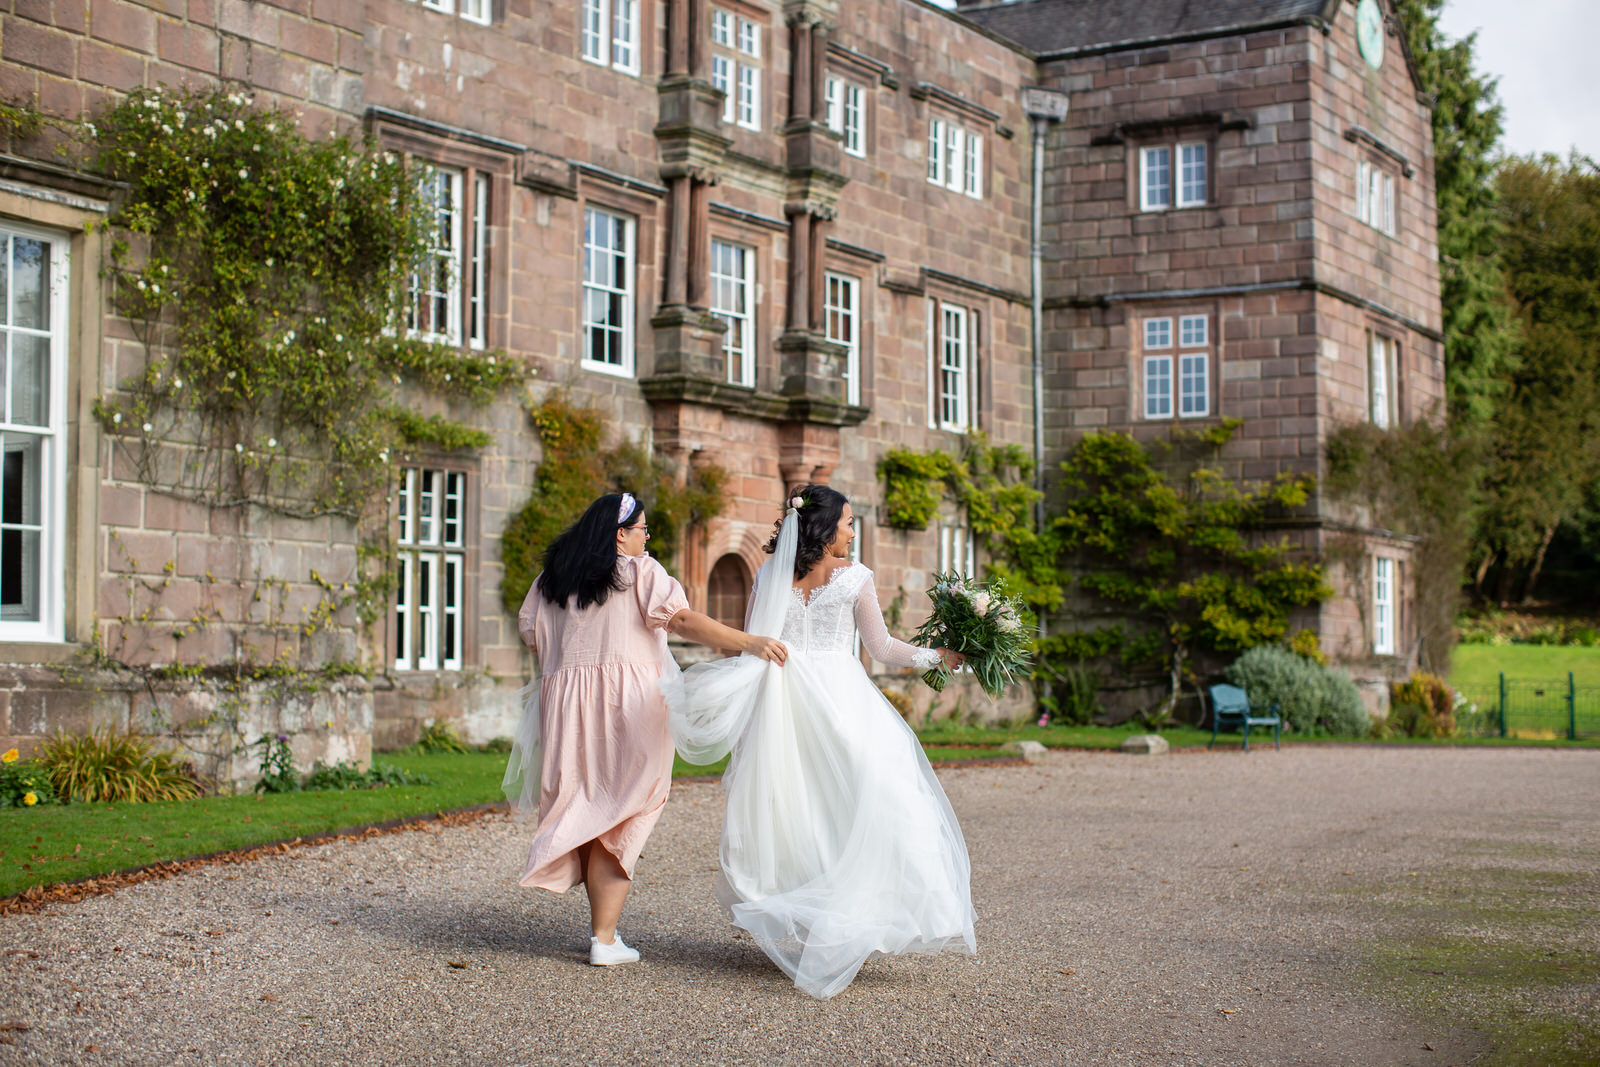 lottie brides helps bride with dress during shoot